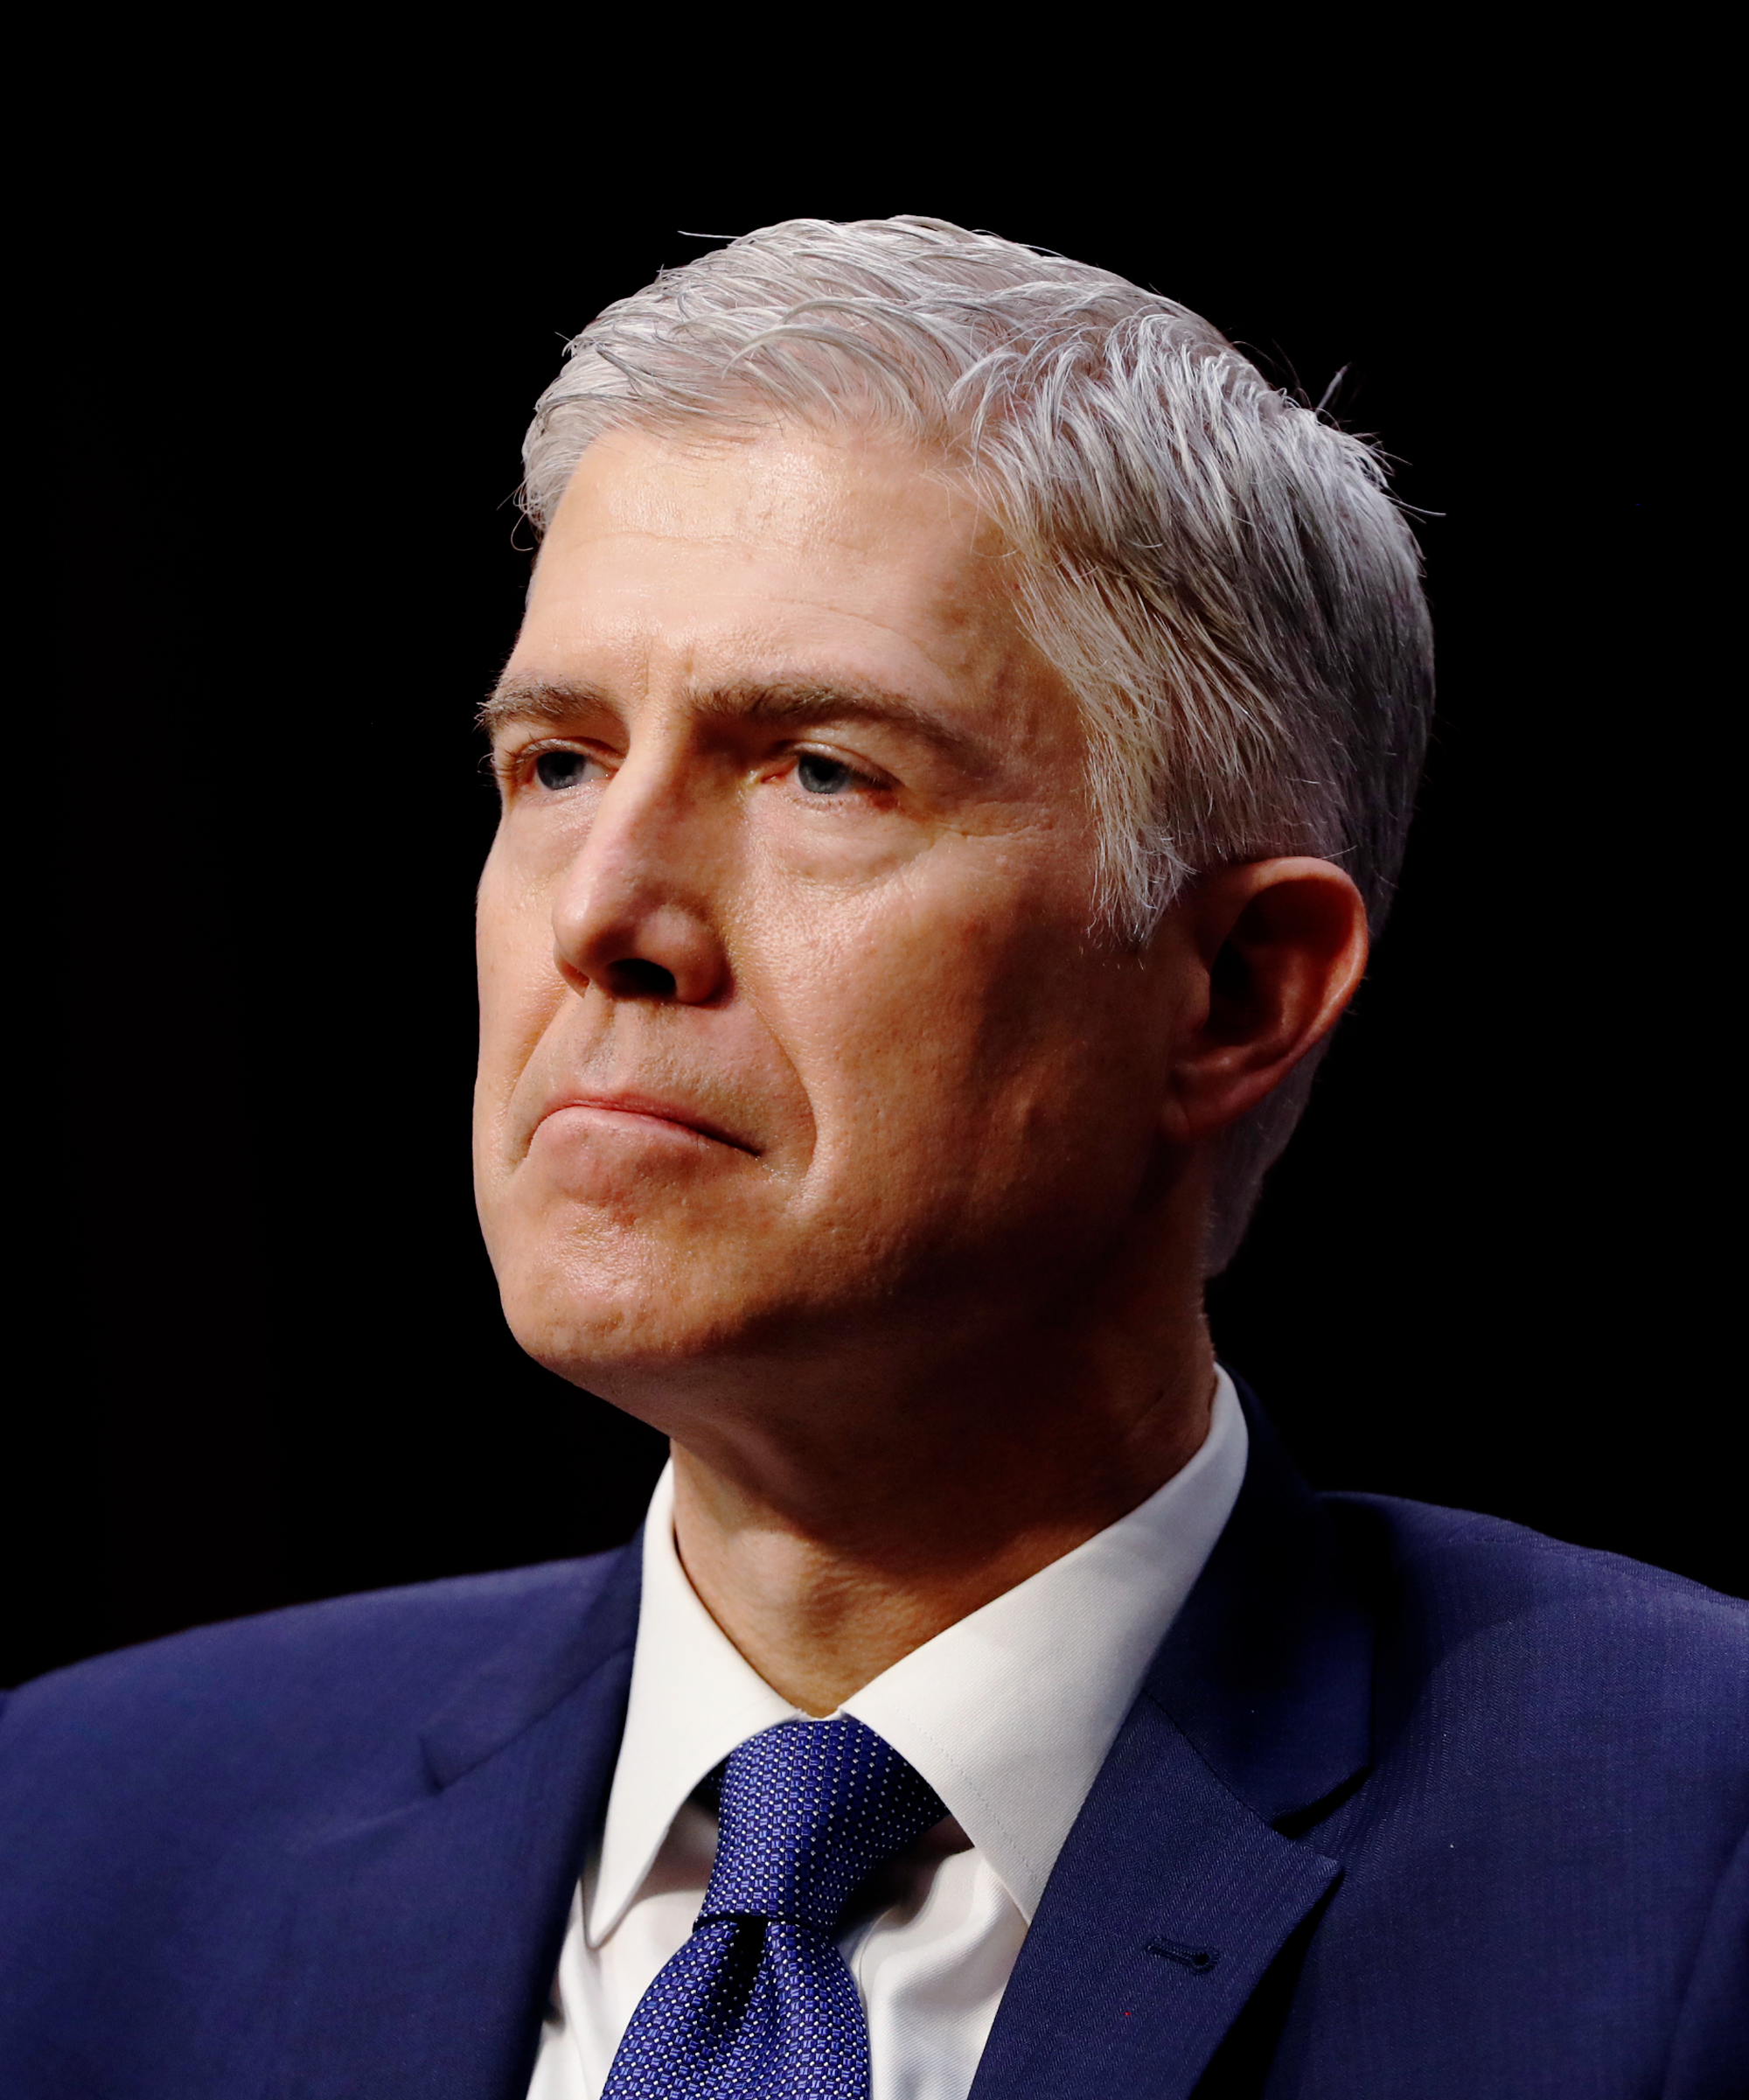 Neil Gorsuch Confirmed By Senate As Next Supreme Court Justice